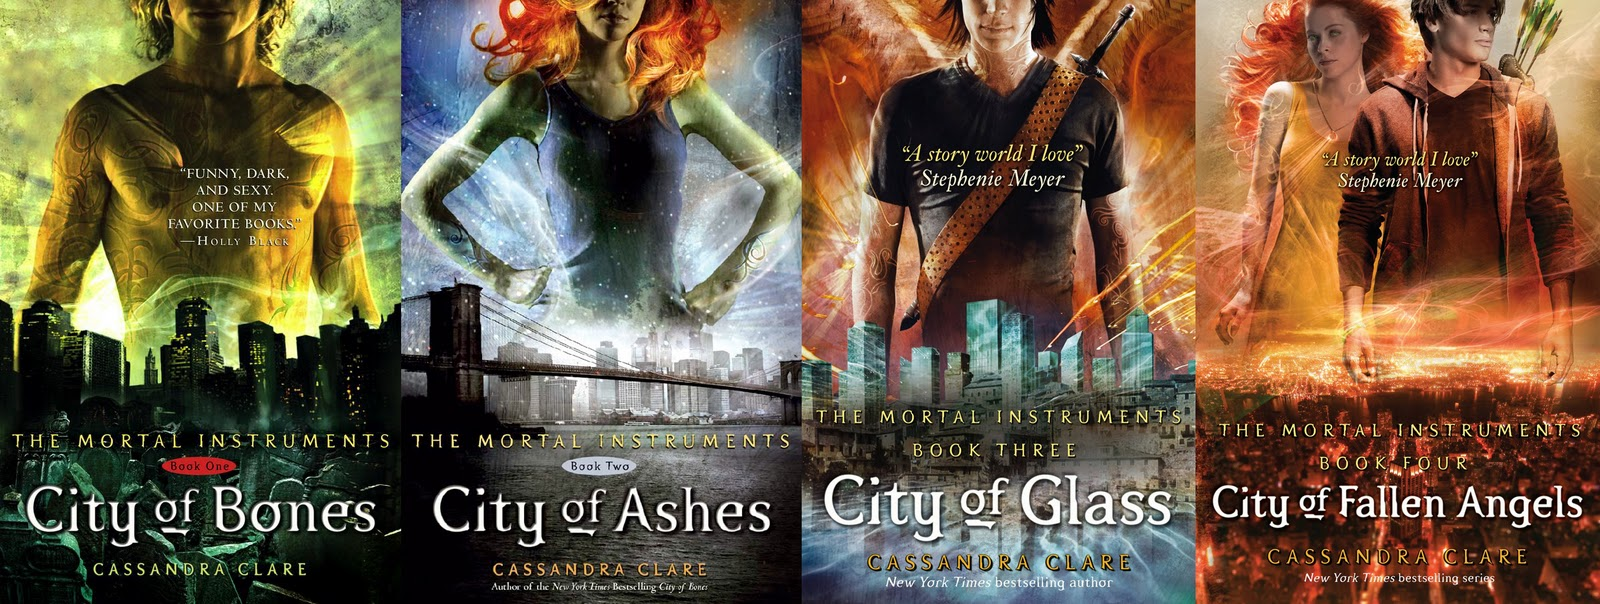 City of fallen angels book cover